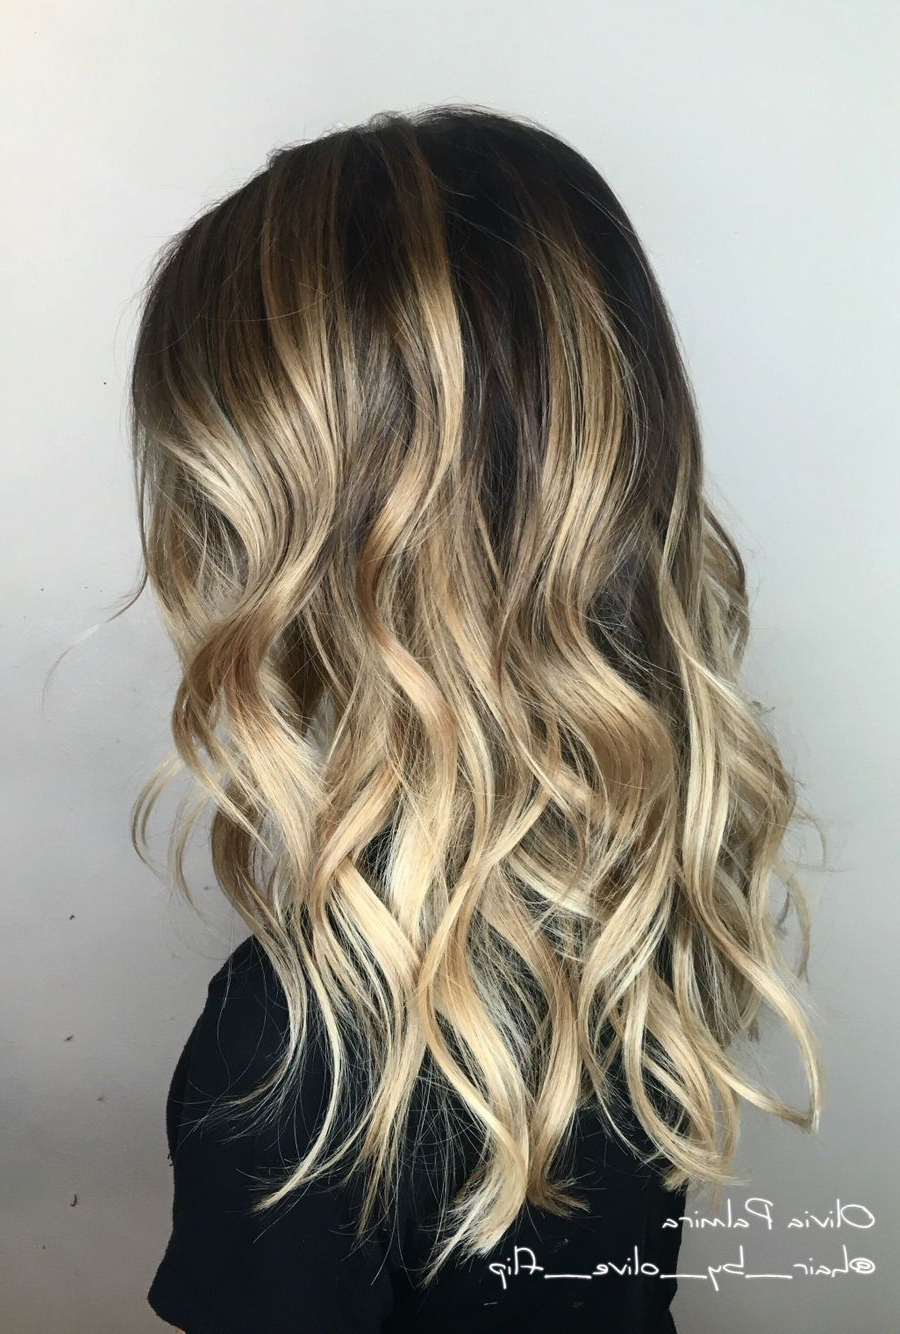 Aveda Wavy Long Hair Blonde Bob Short Hair Beach Wave Medium Intended For Trendy Mid Length Beach Waves Hairstyles (View 6 of 20)